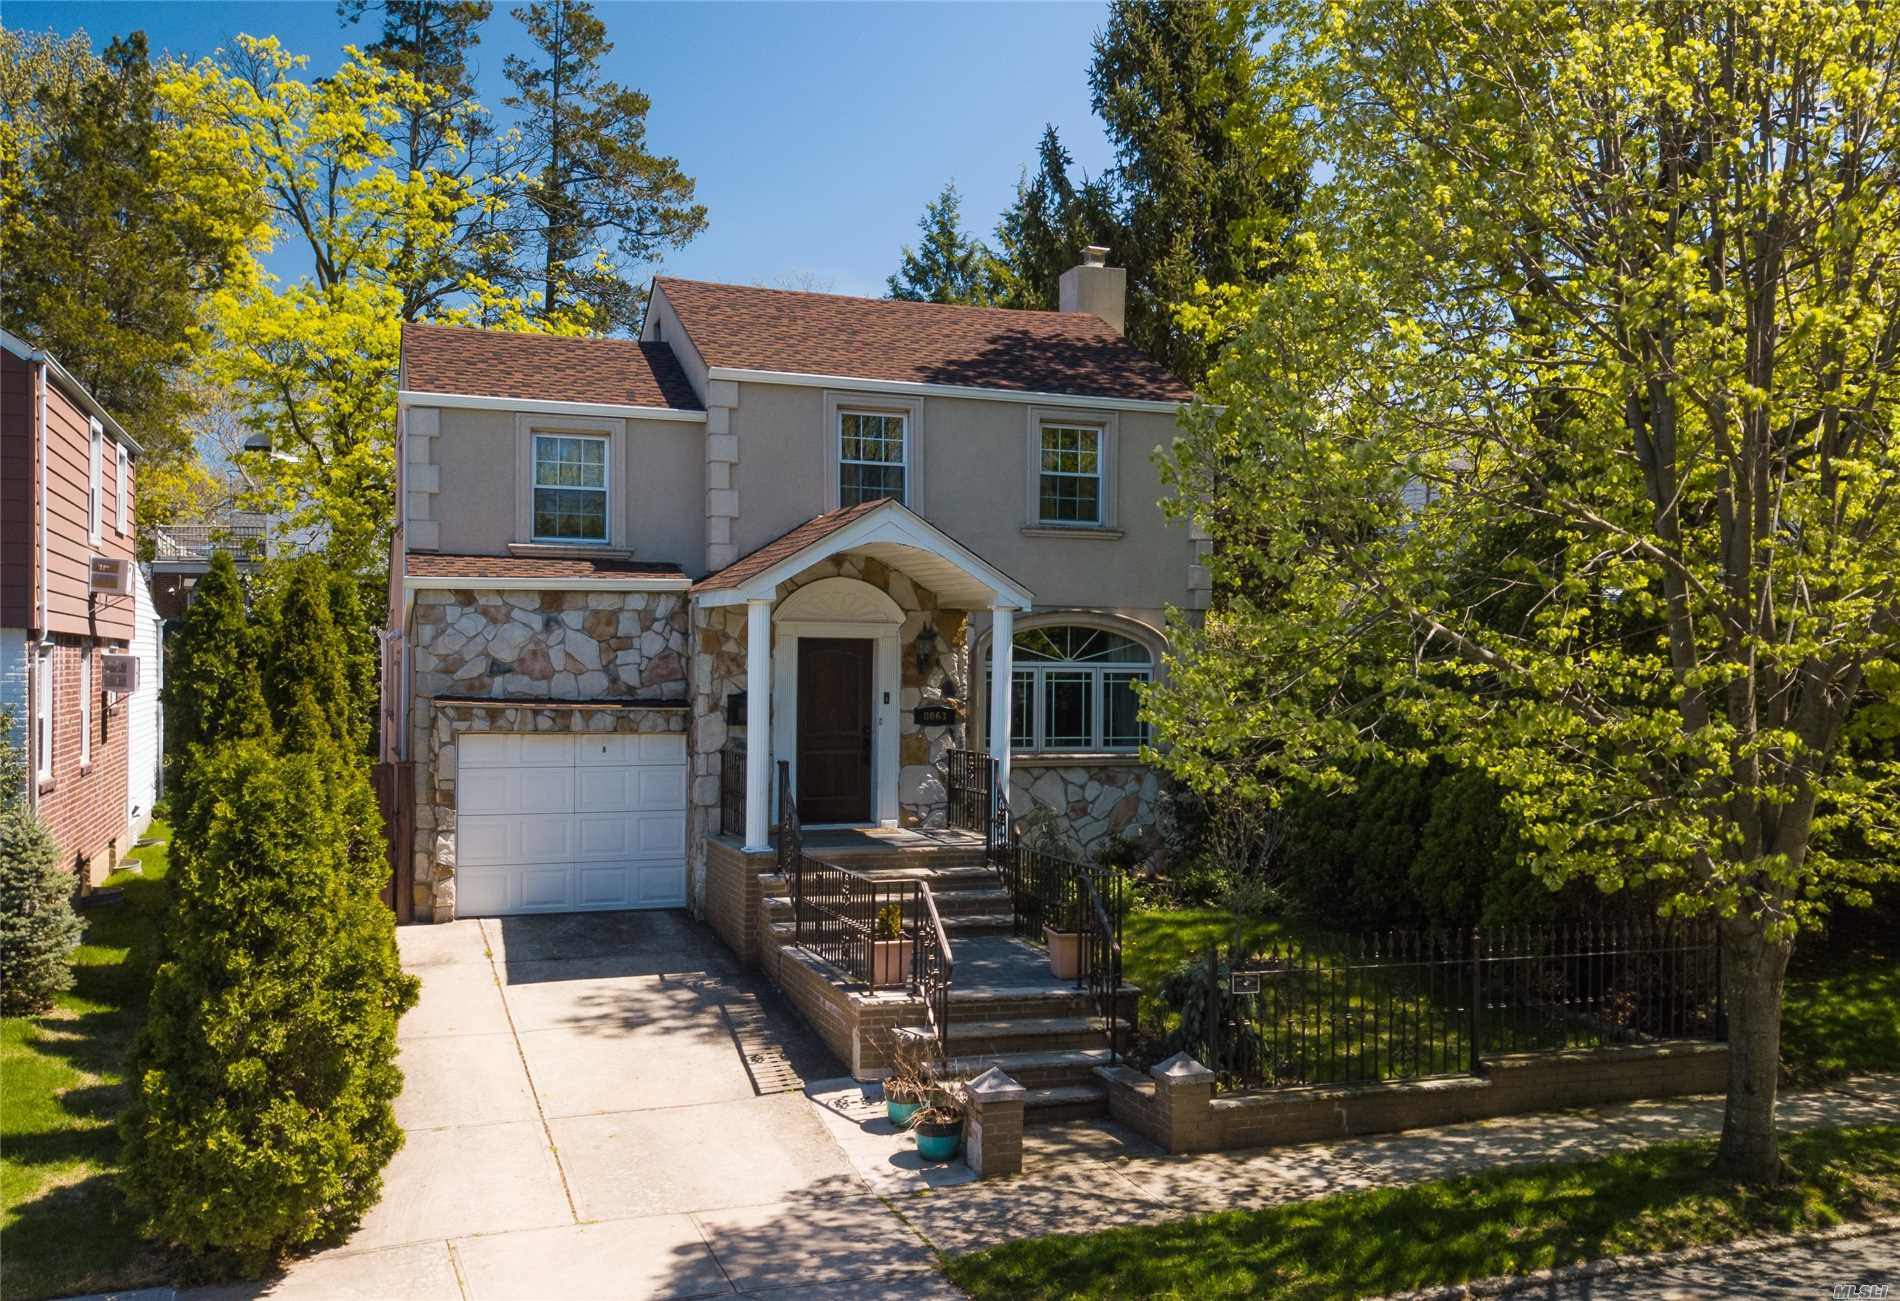 Move right into this fully updated stucco & stone colonial! A true turn-key home, this 3 bedroom, 3 bath beauty has been fully renovated, from top to bottom and inside and out! In addition there is a family room extension in the rear of the first floor.